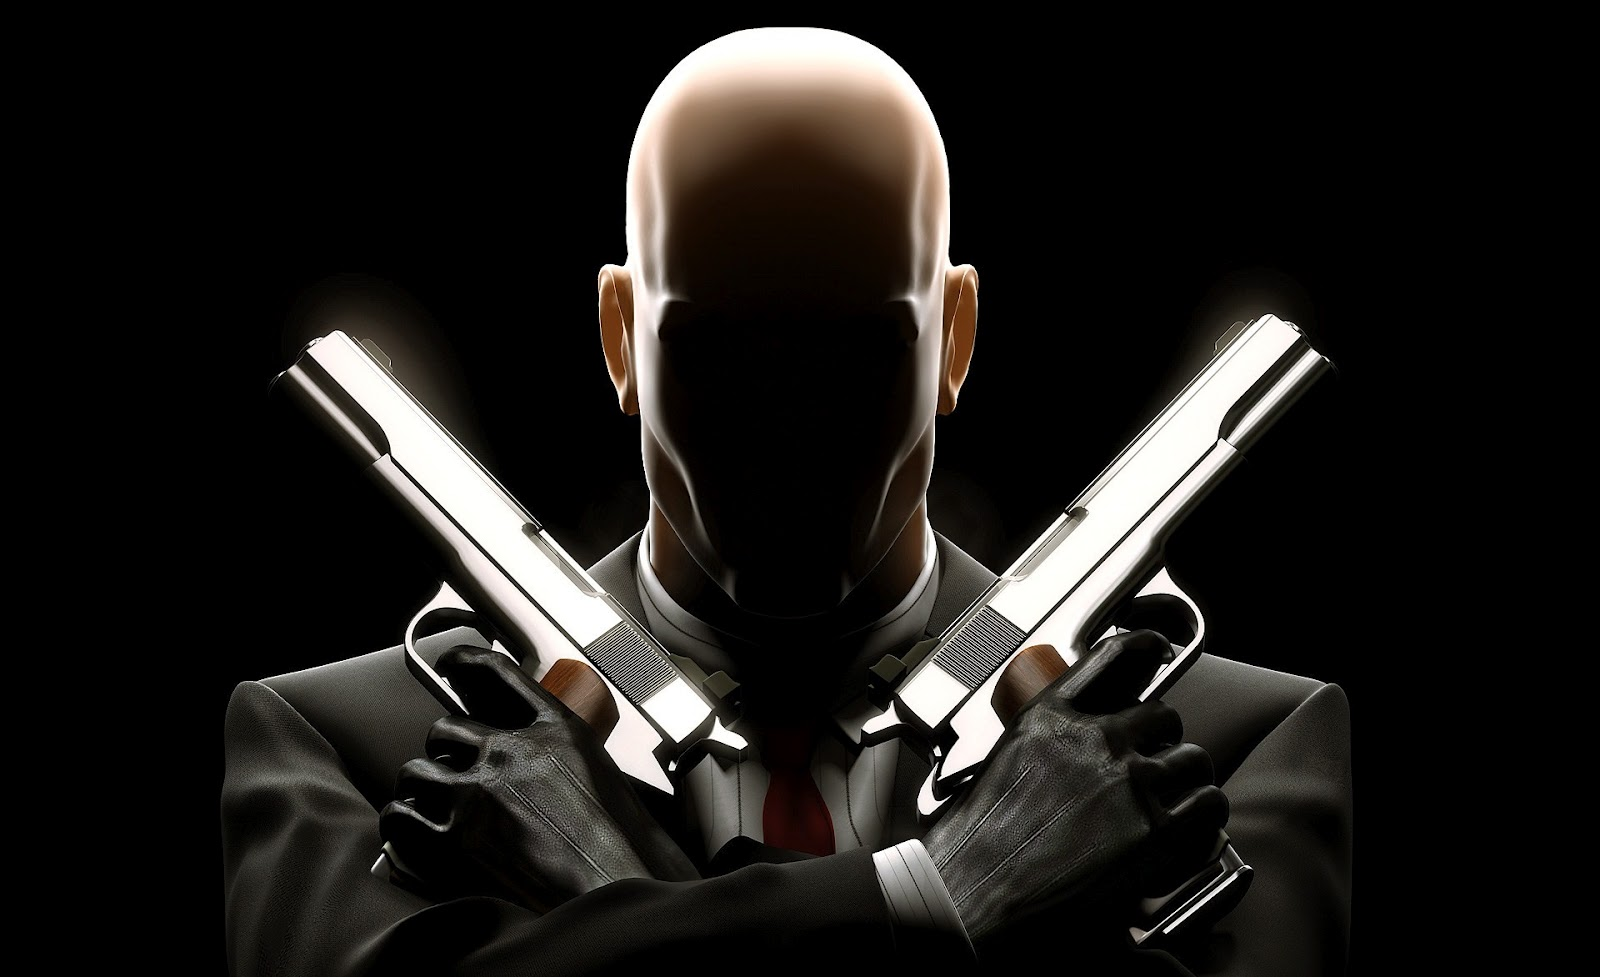 http://3.bp.blogspot.com/-AeZ8L3pjNzc/UAU9ugD8R3I/AAAAAAAABYk/AAk7lmfDidc/s1600/hitman+wallpaper+background+io+interactive+fps+first+third+person+shooter+2.jpg